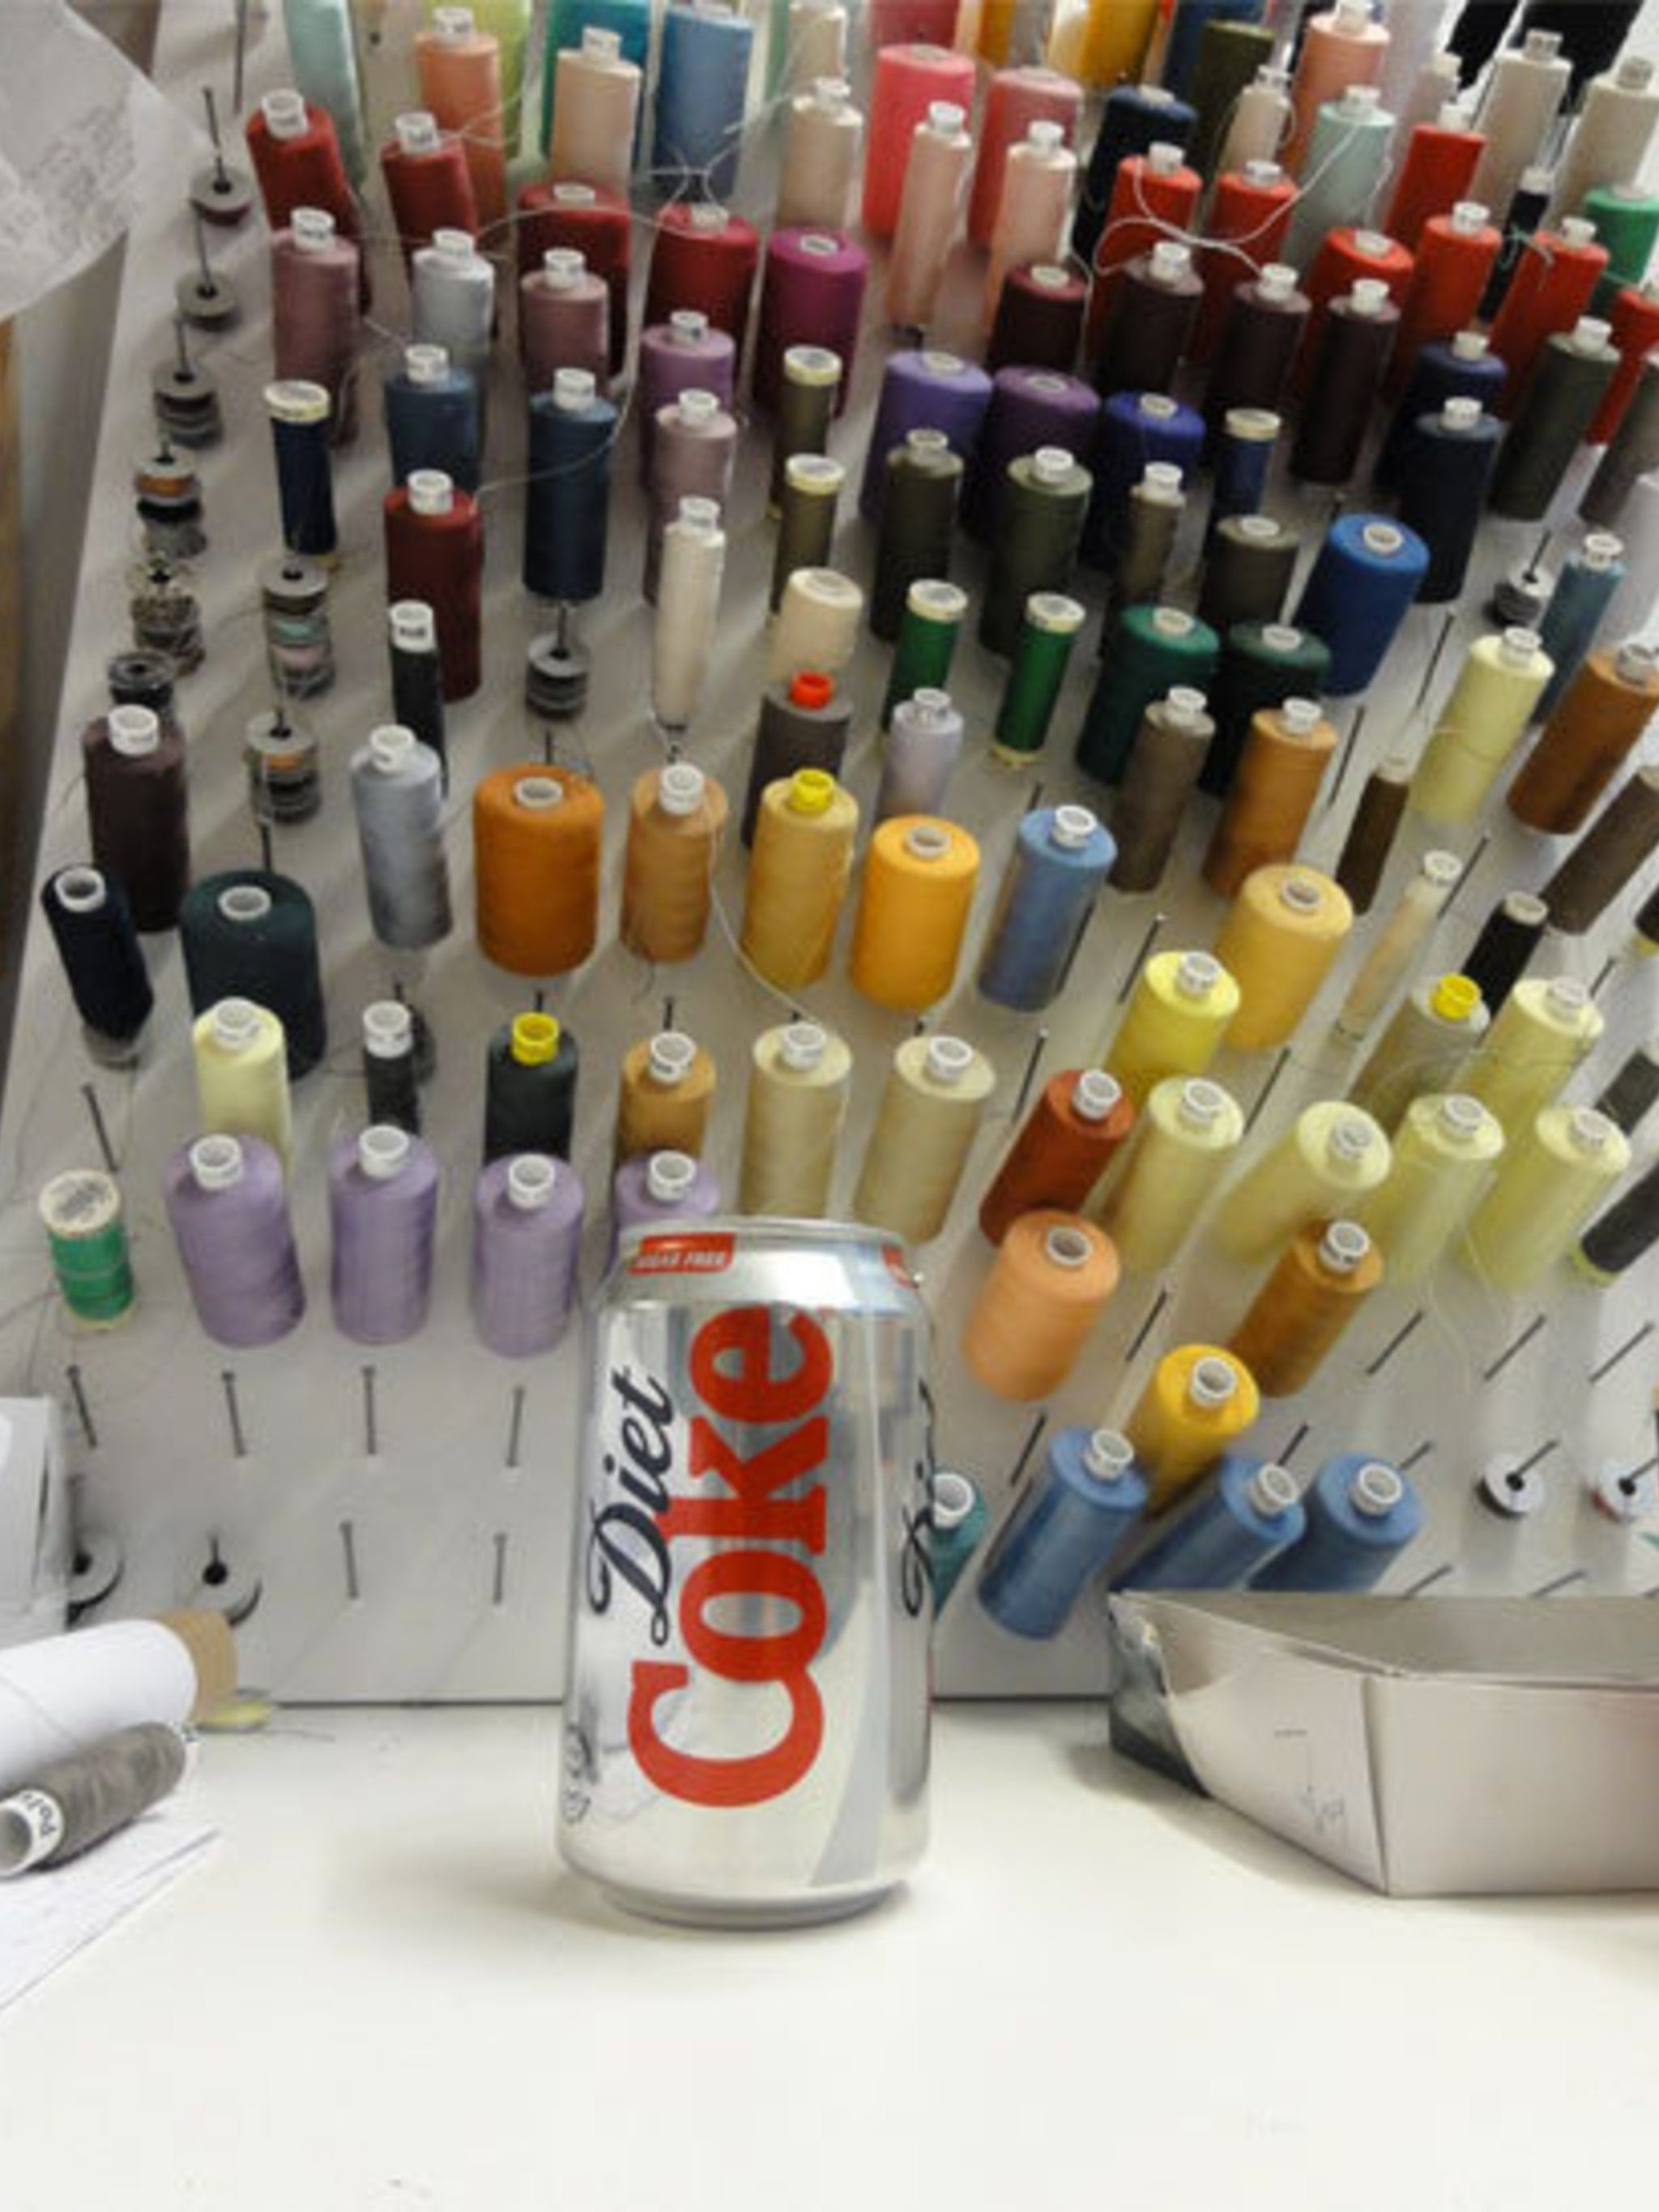 "<p><a href=""http://www.elleuk.com/catwalk/designer-a-z/antipodium/autumn-winter-2012"">Antipodium</a>, fashion brand: 'The one thing that Geoffrey (or most of our office for that matter) CANNOT do without during LFW....Diet Coke.'</p>"